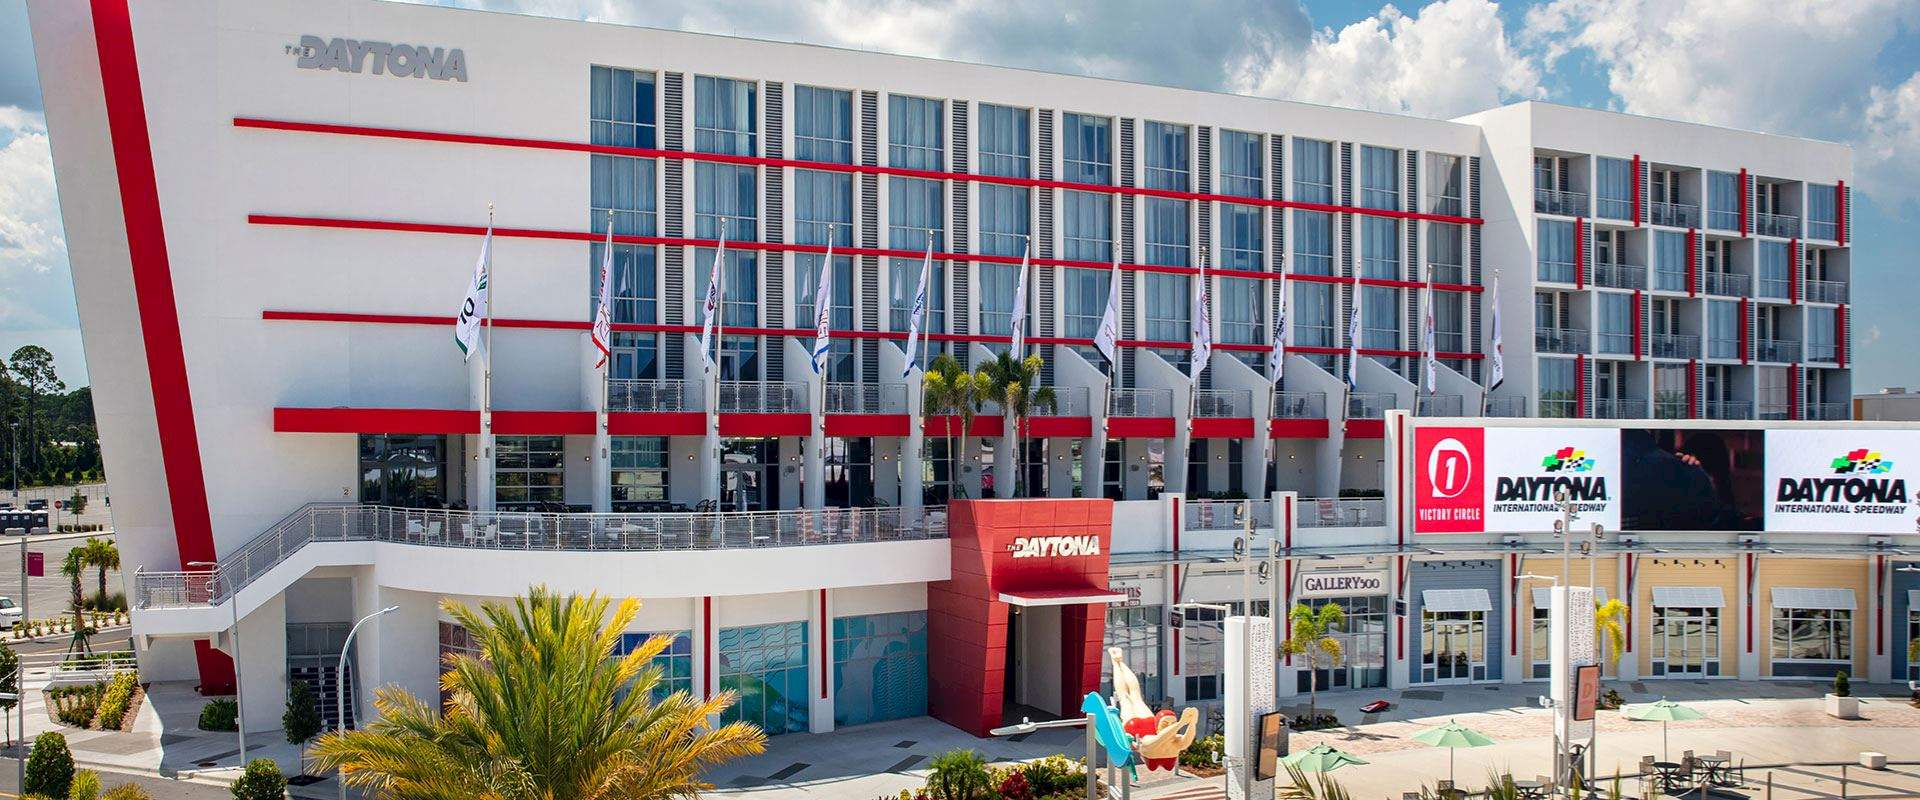 Location of The Daytona, Autograph Collection Hotel